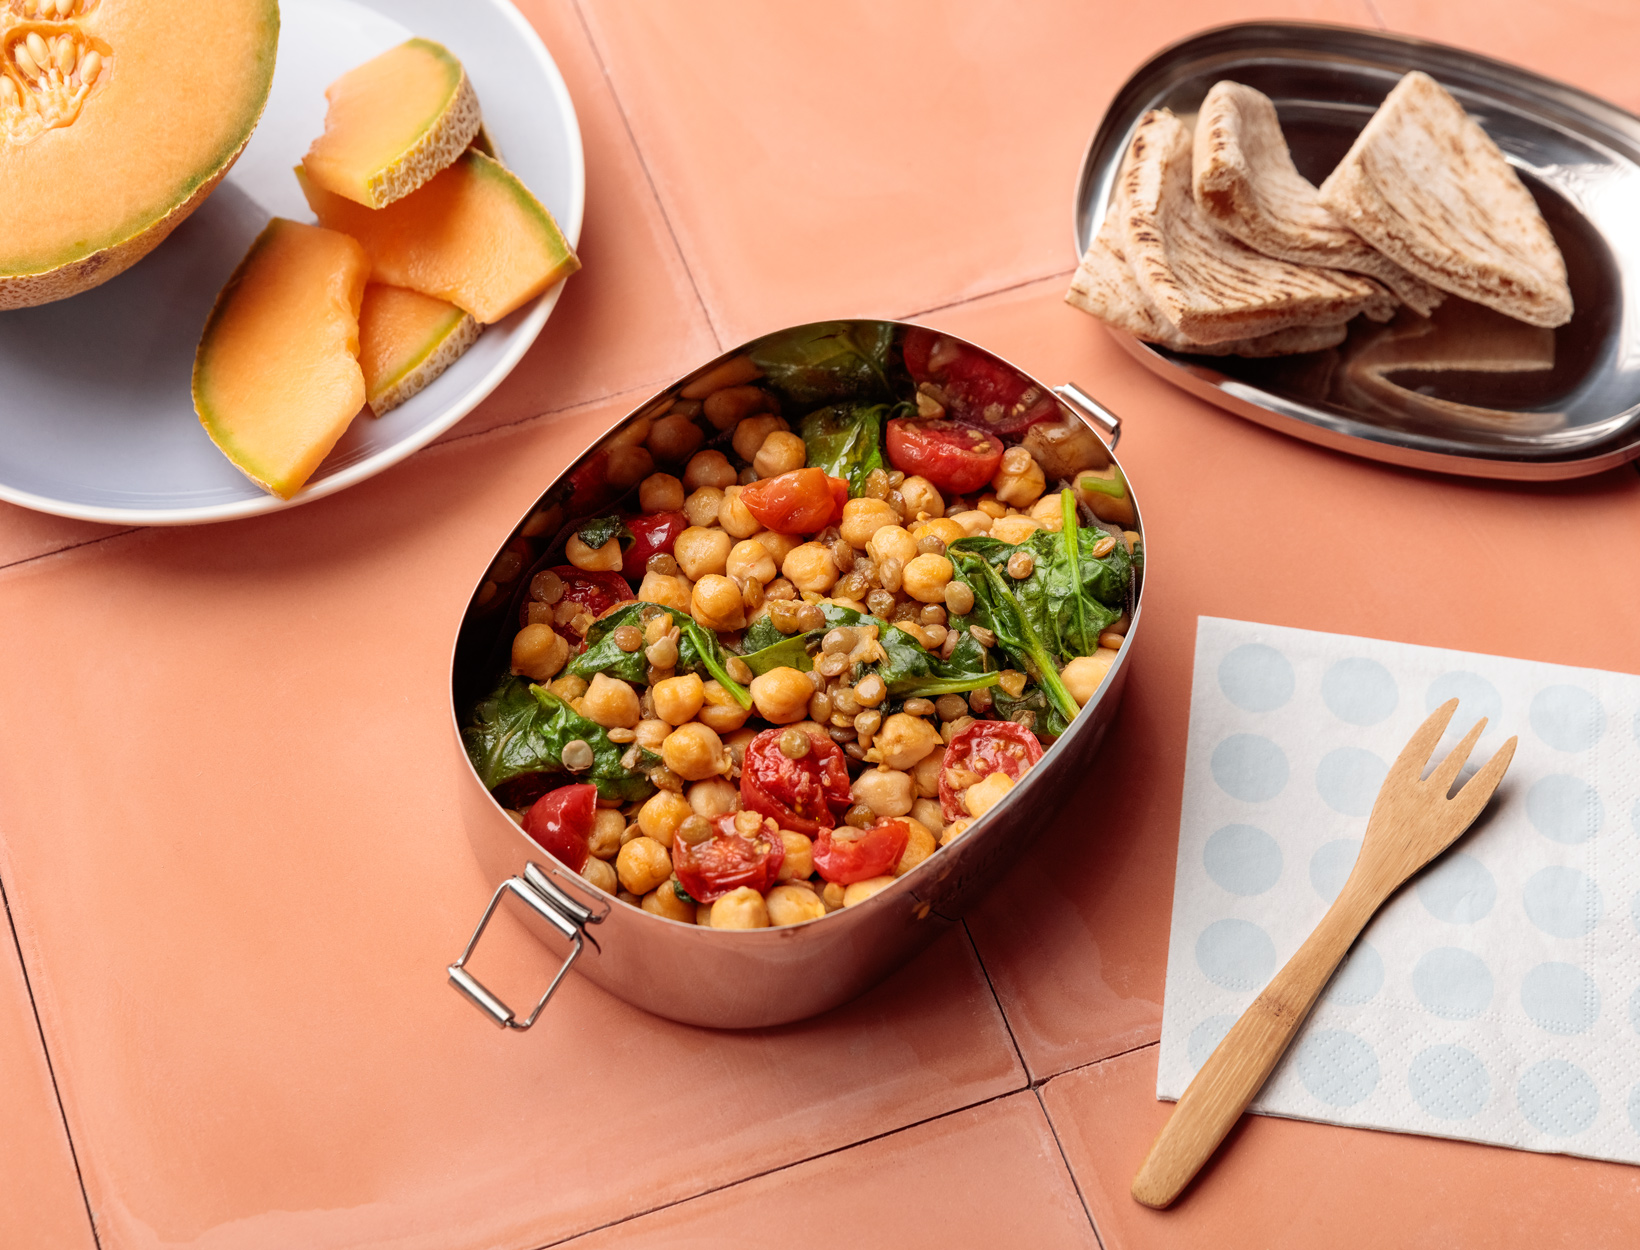 Lentil and Chickpea Salad with Greens and Pita